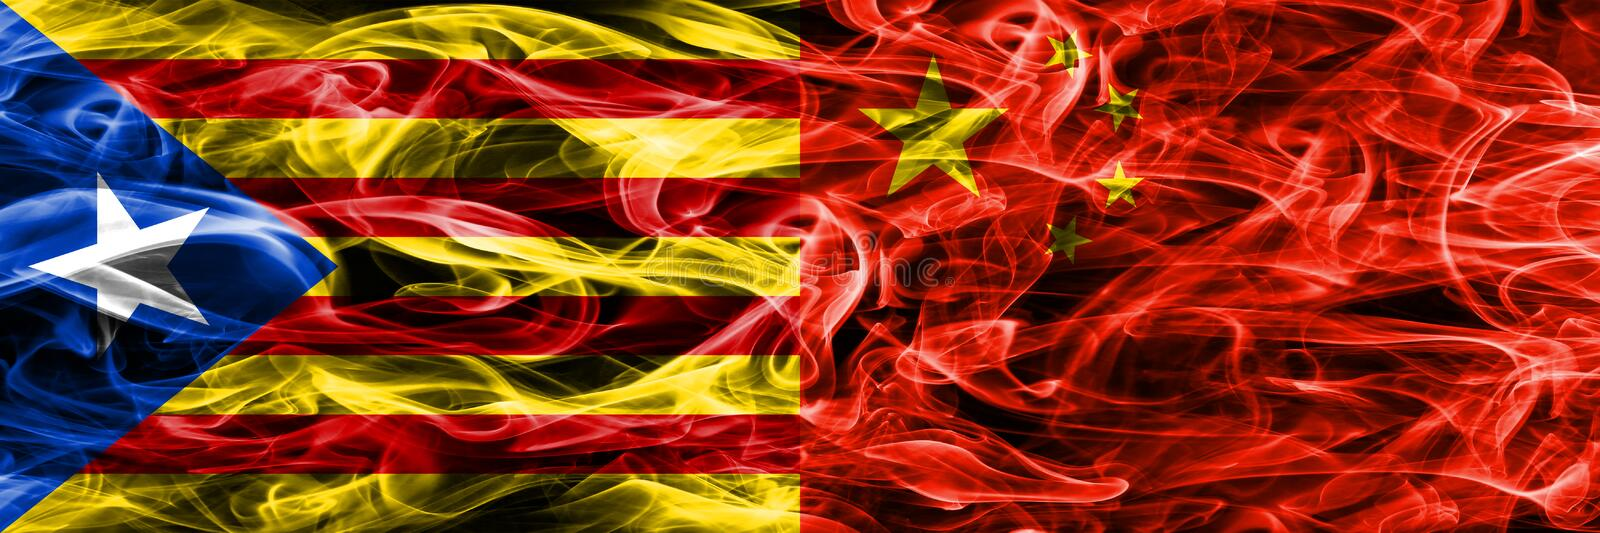 Catalonia vs China copy smoke flags placed side by side. Thick colored silky smoke flags of Catalan and China copy.  royalty free illustration